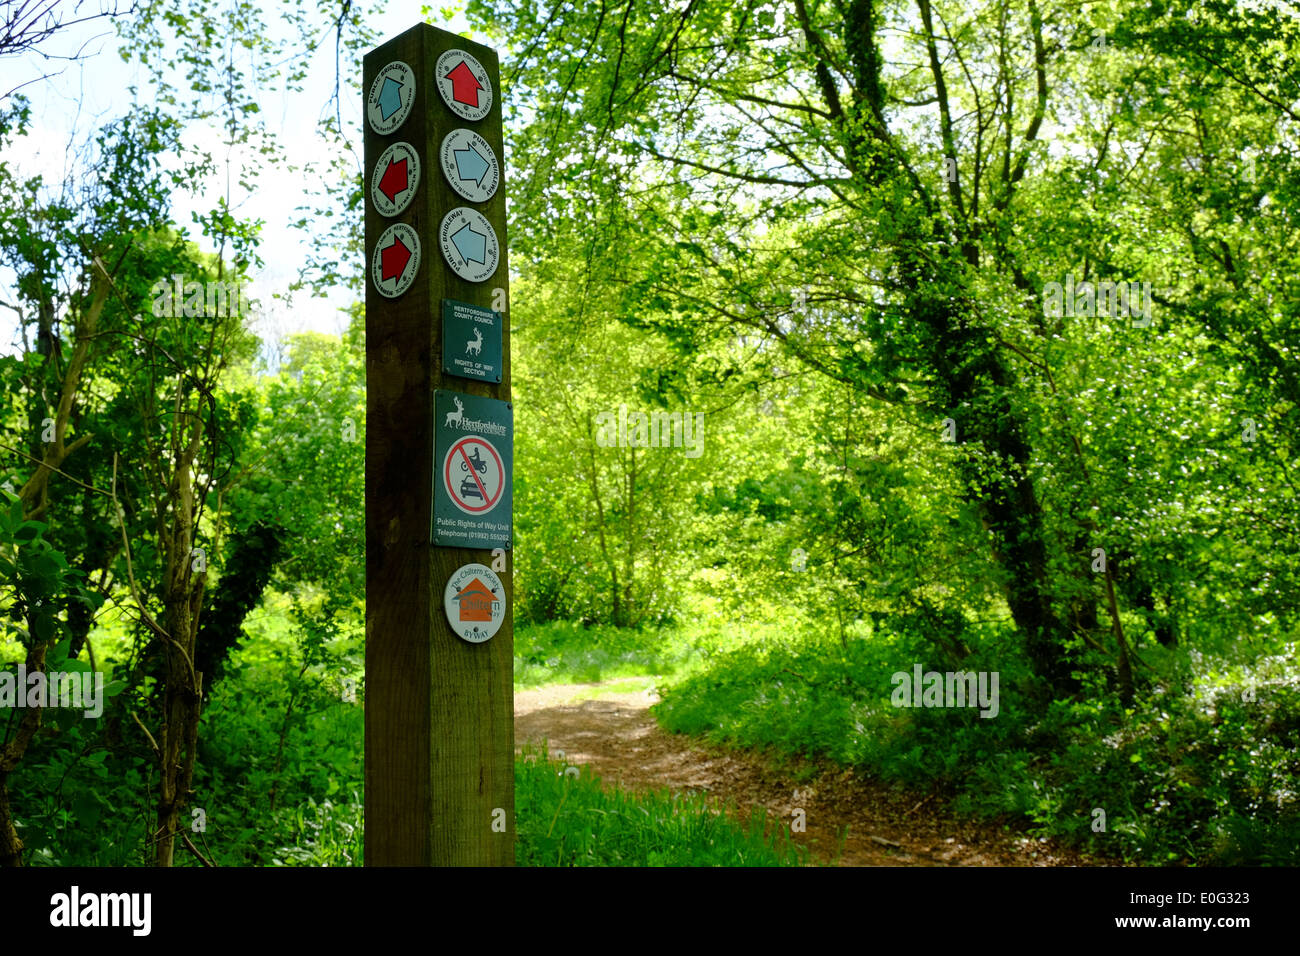 Public Rights of Way marker Post in Hertfordshire - Stock Image